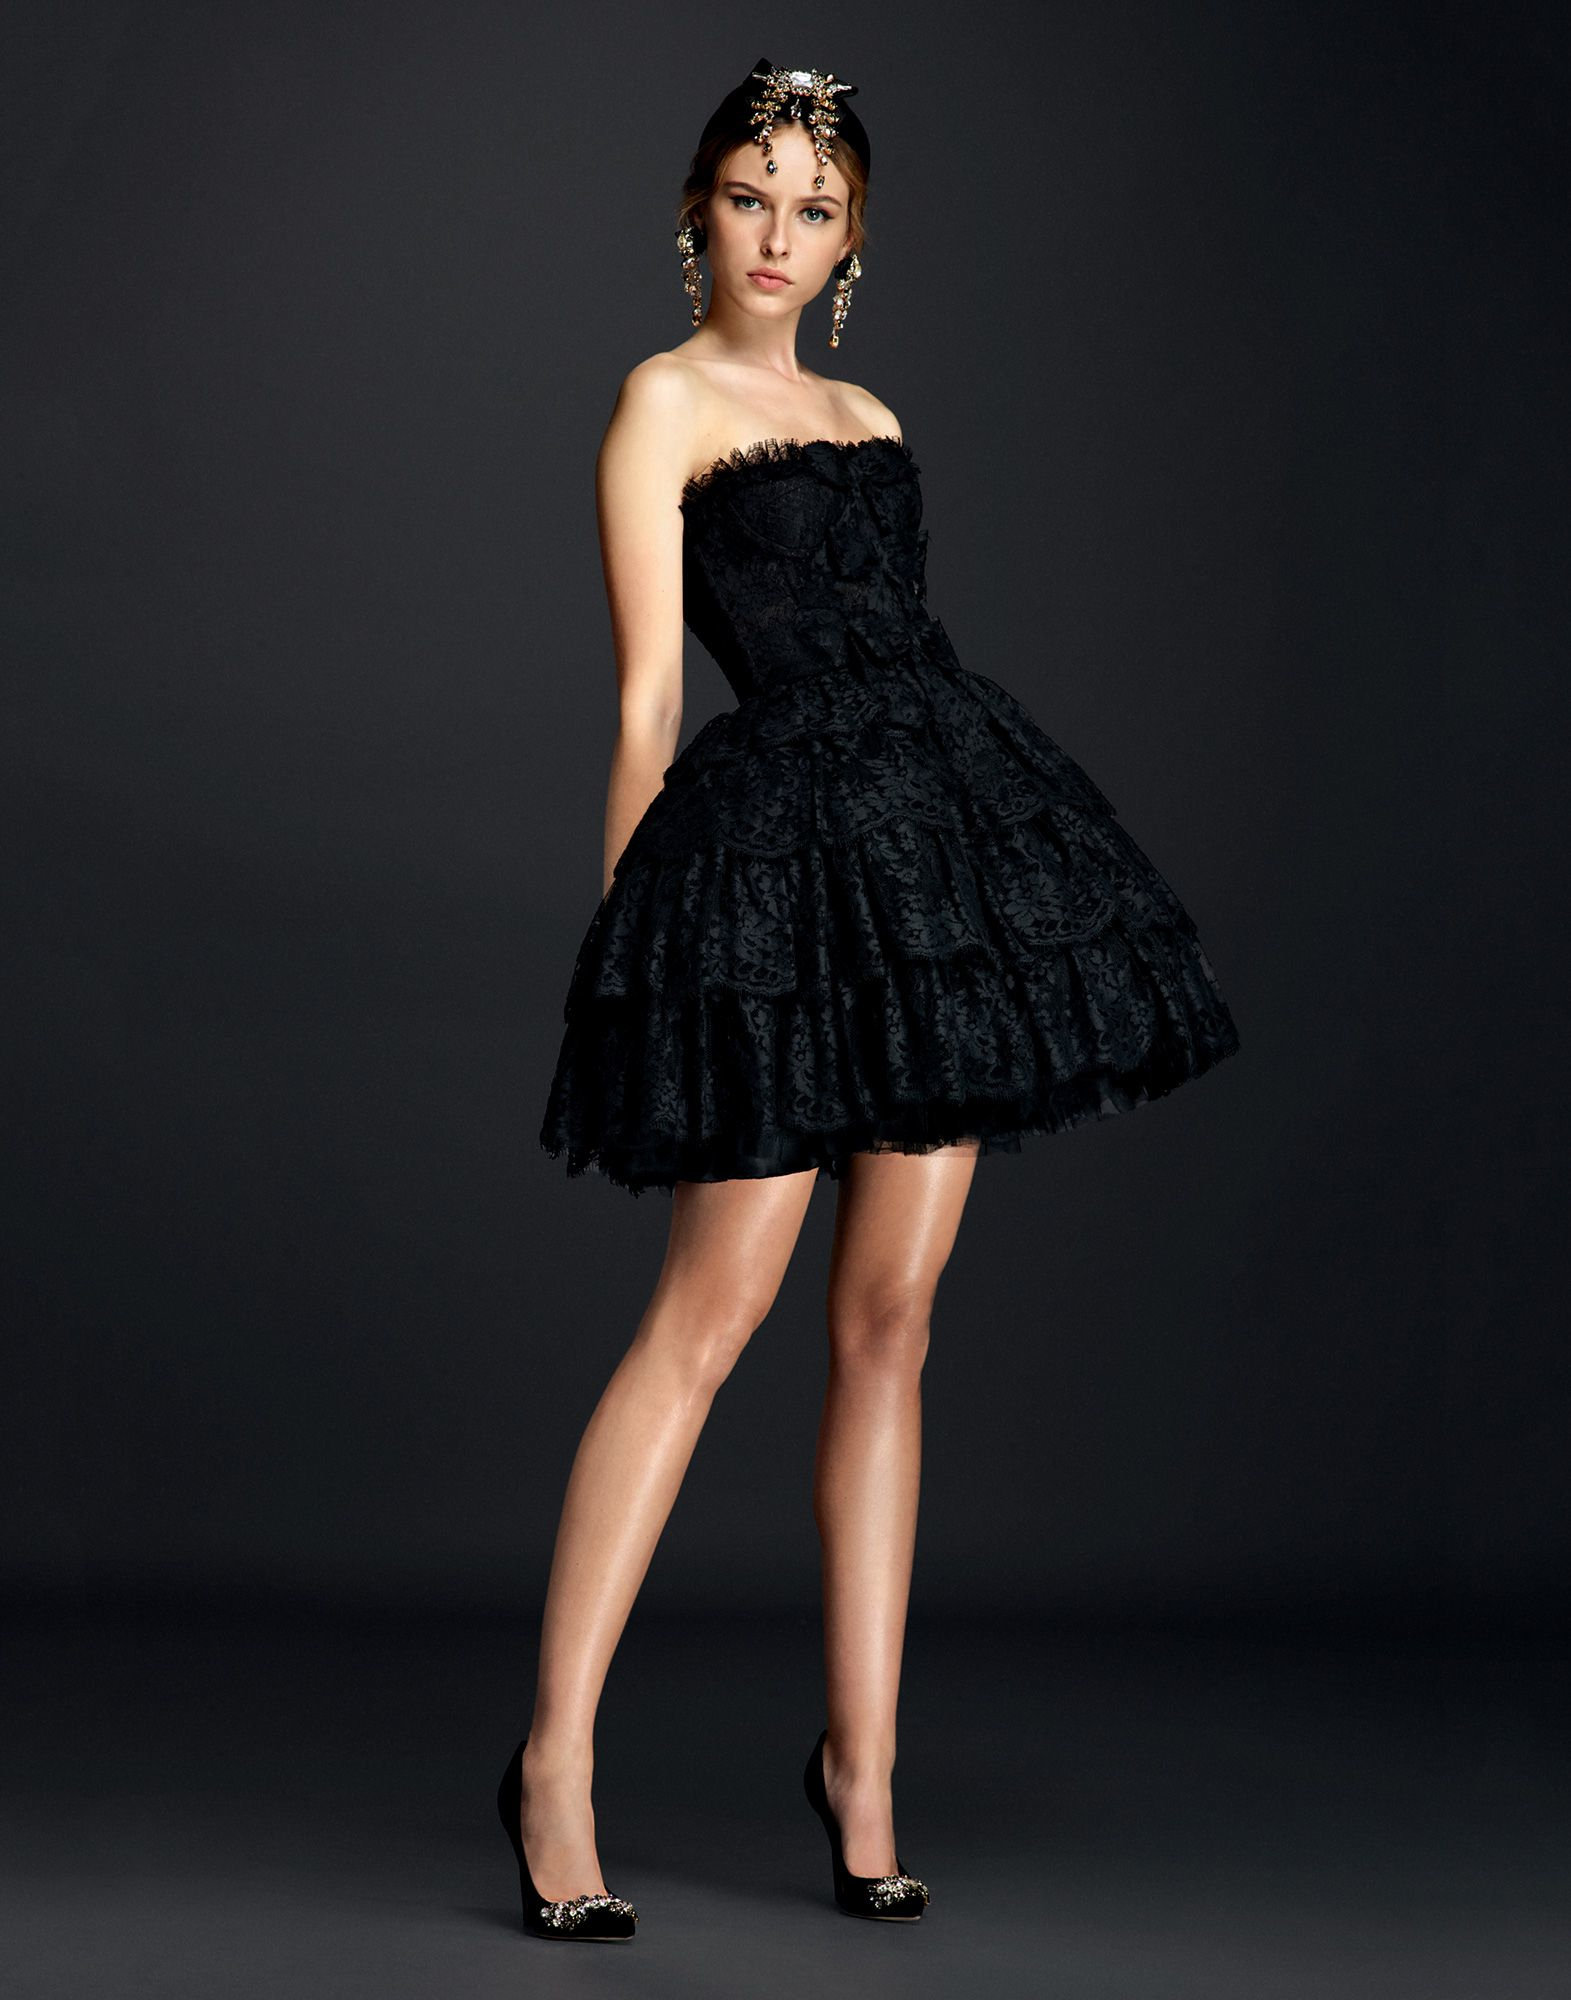 Dolce Amp Gabbana Ballerina Dress In Lace And Tulle In Black